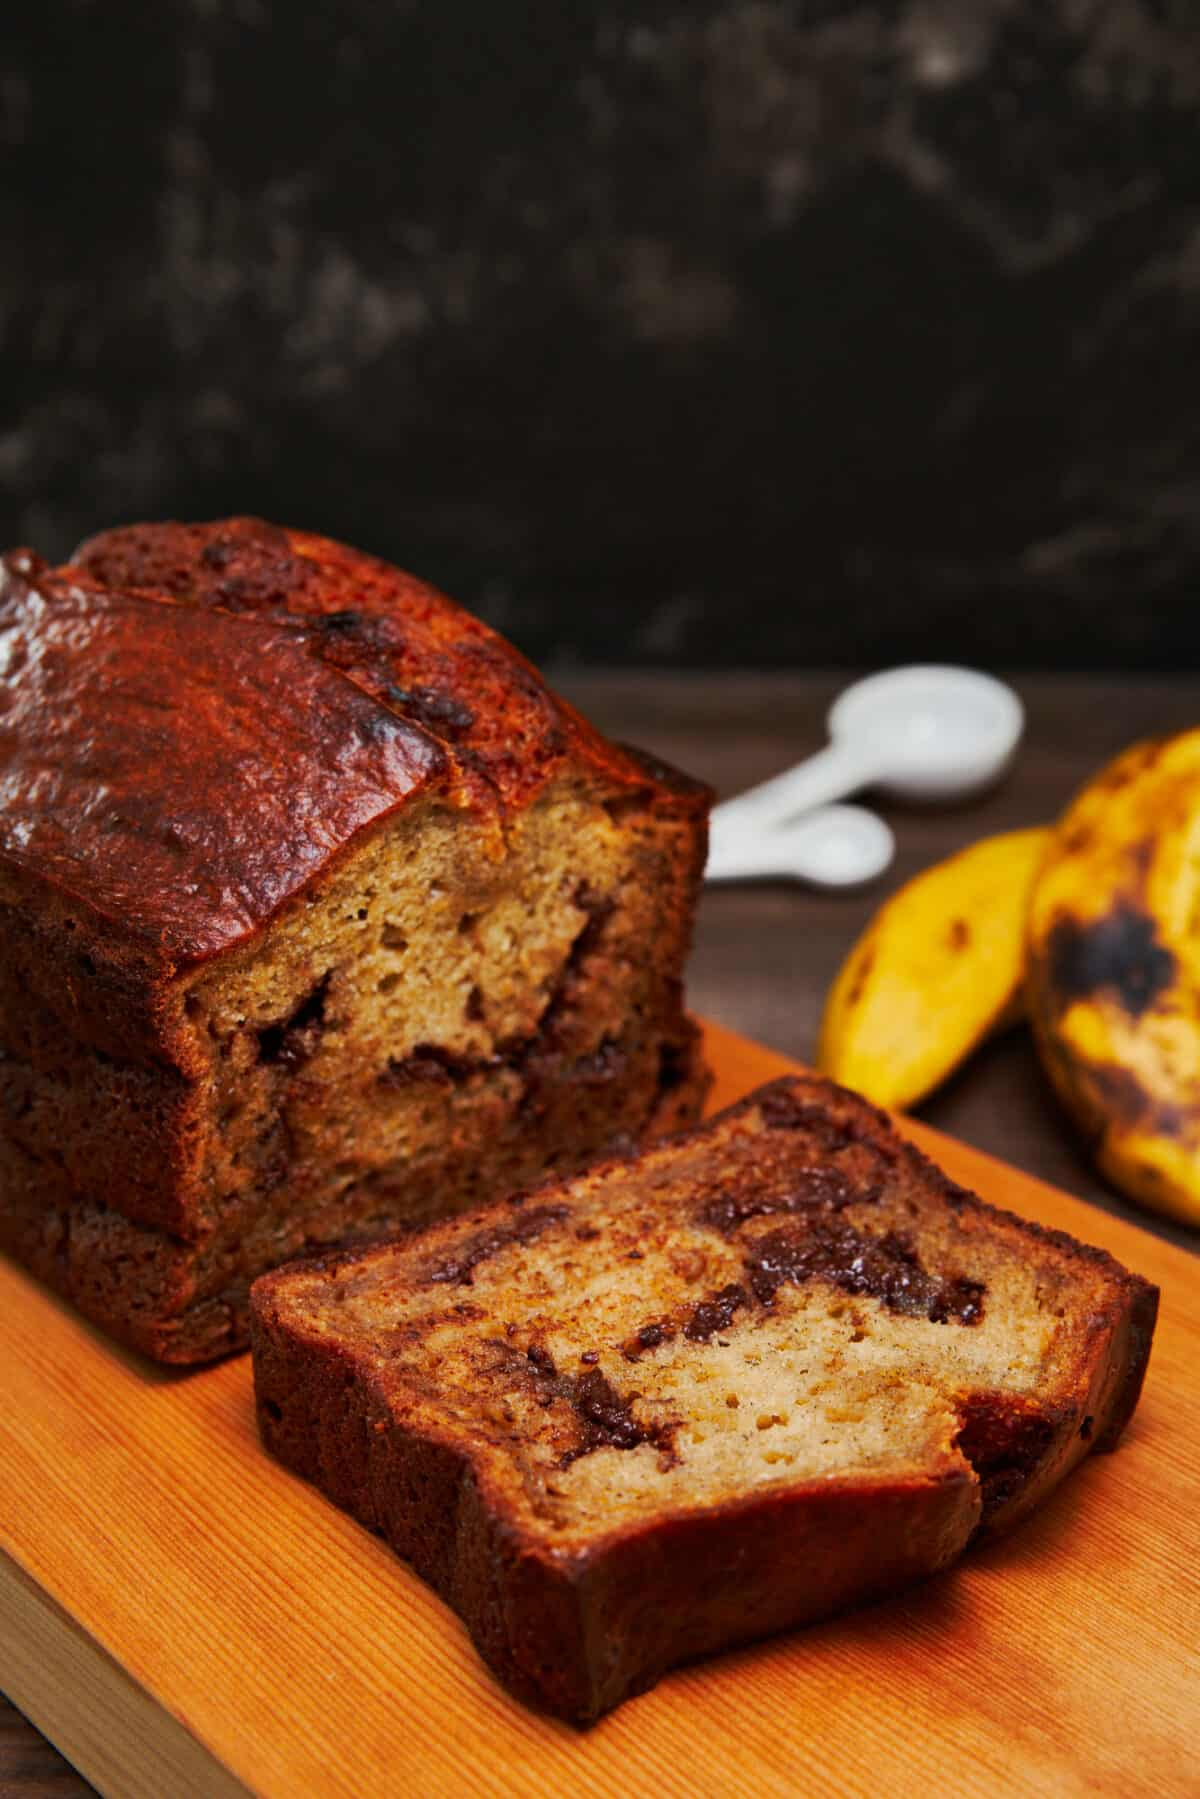 With a tender buttery crumb, bold banana flavor, and big hunks of chocolate, this is the best banana bread recipe ever.